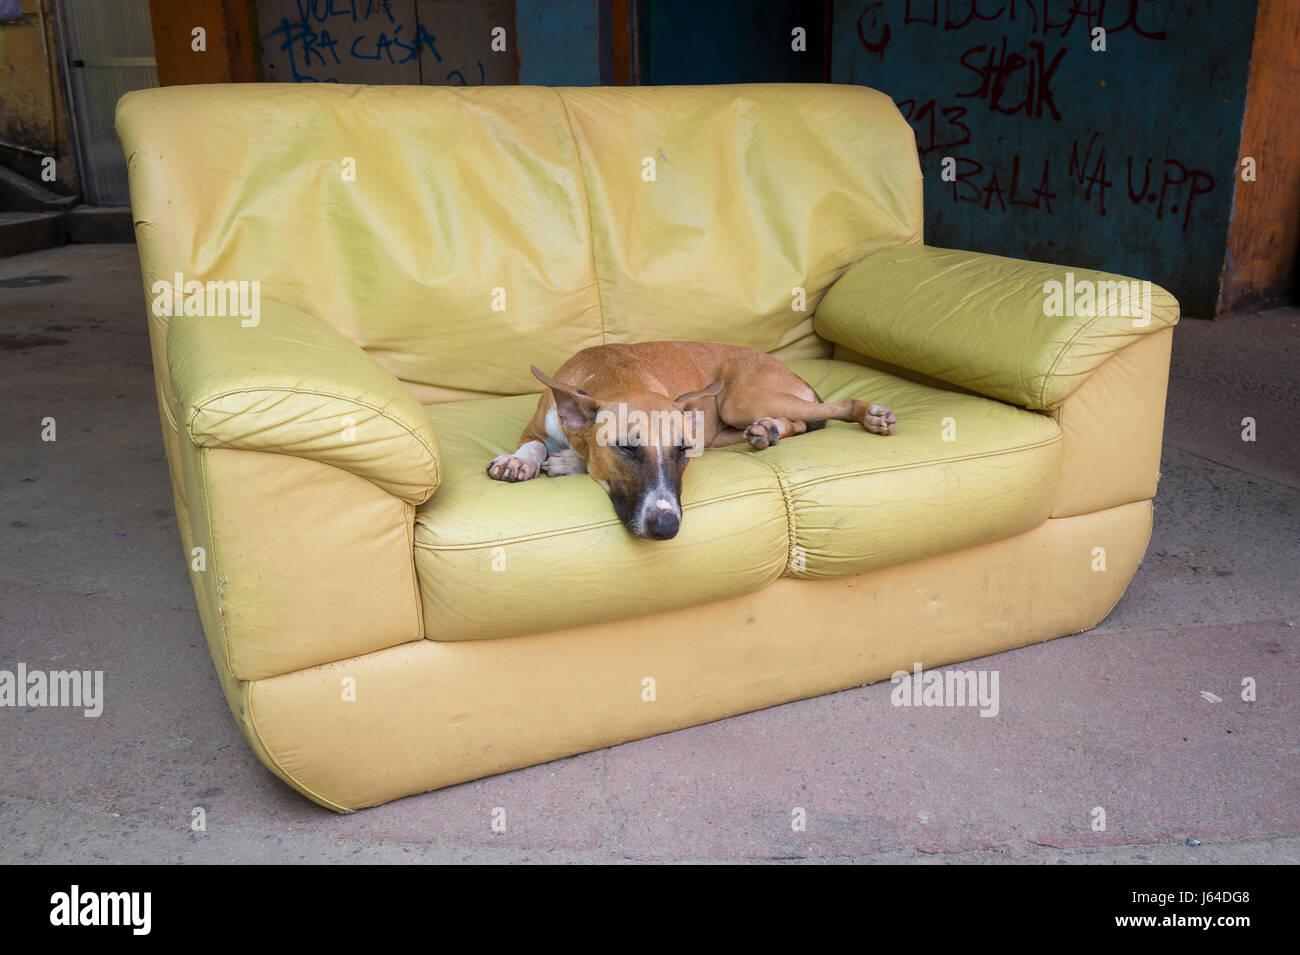 A bull terrier dog resting in a yellow sofa outdoors in the Santa Marta Community favela in Rio de Janeiro, Brazil - Stock Image